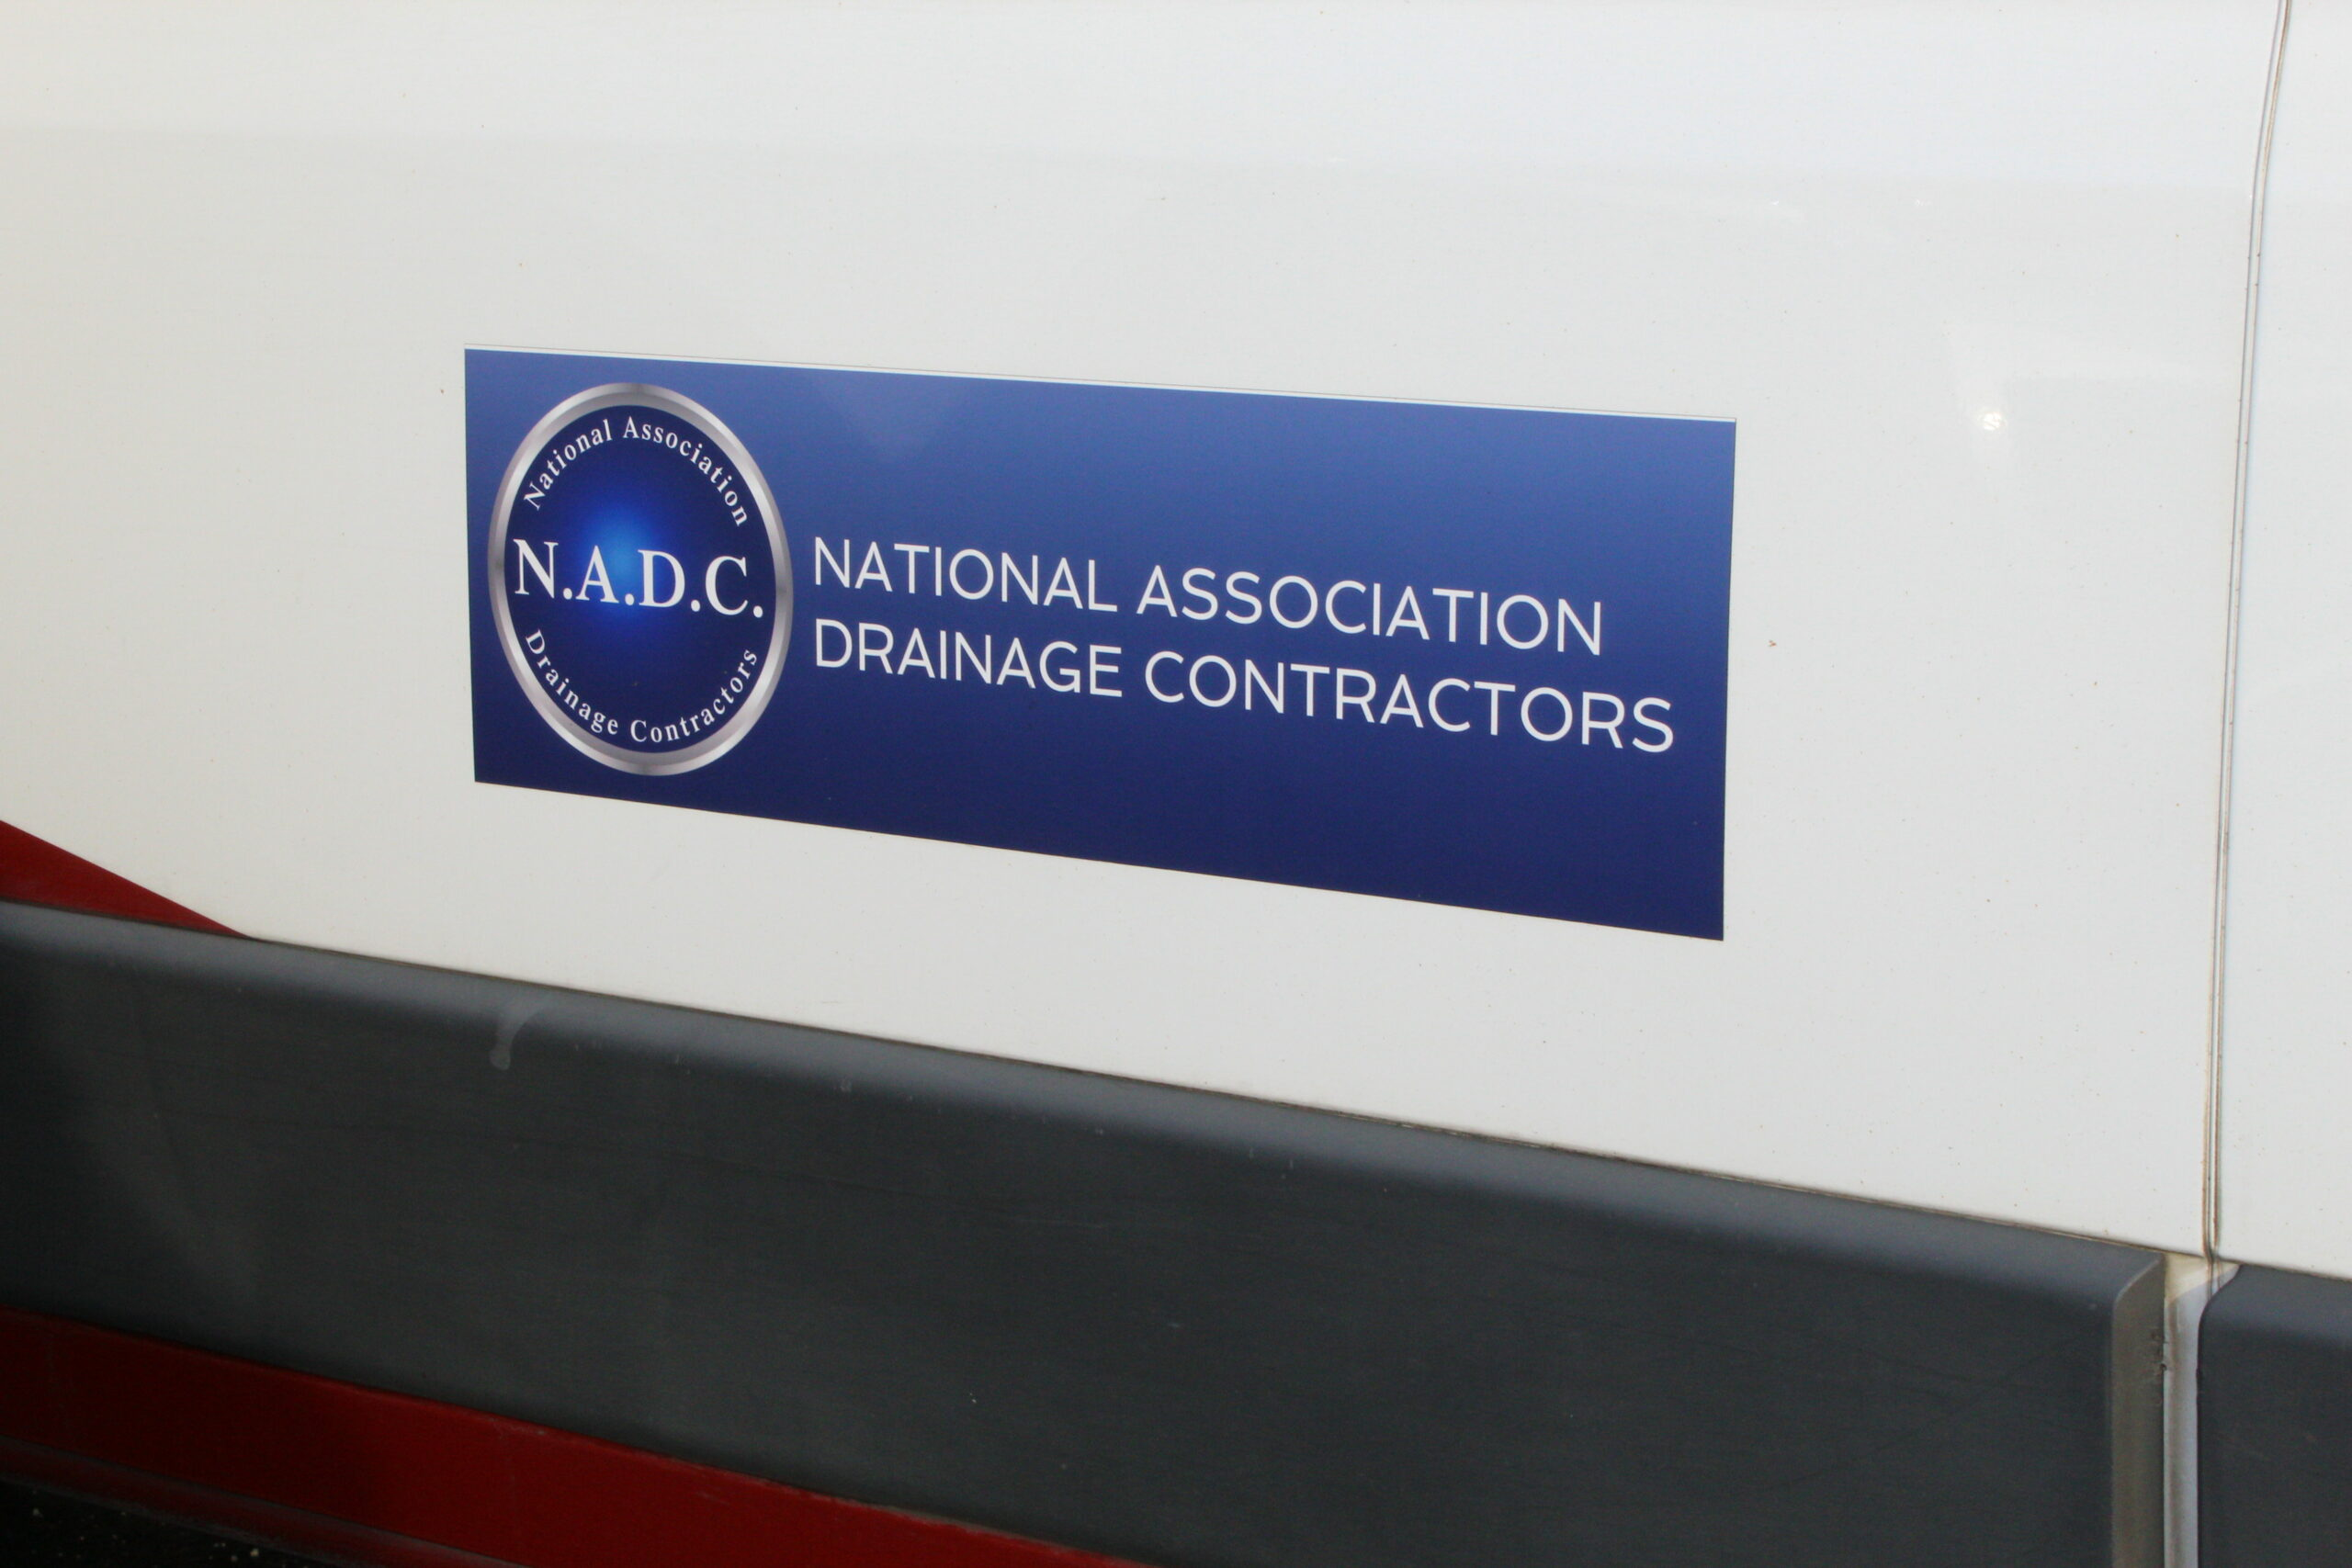 National Association Drainage Contractors